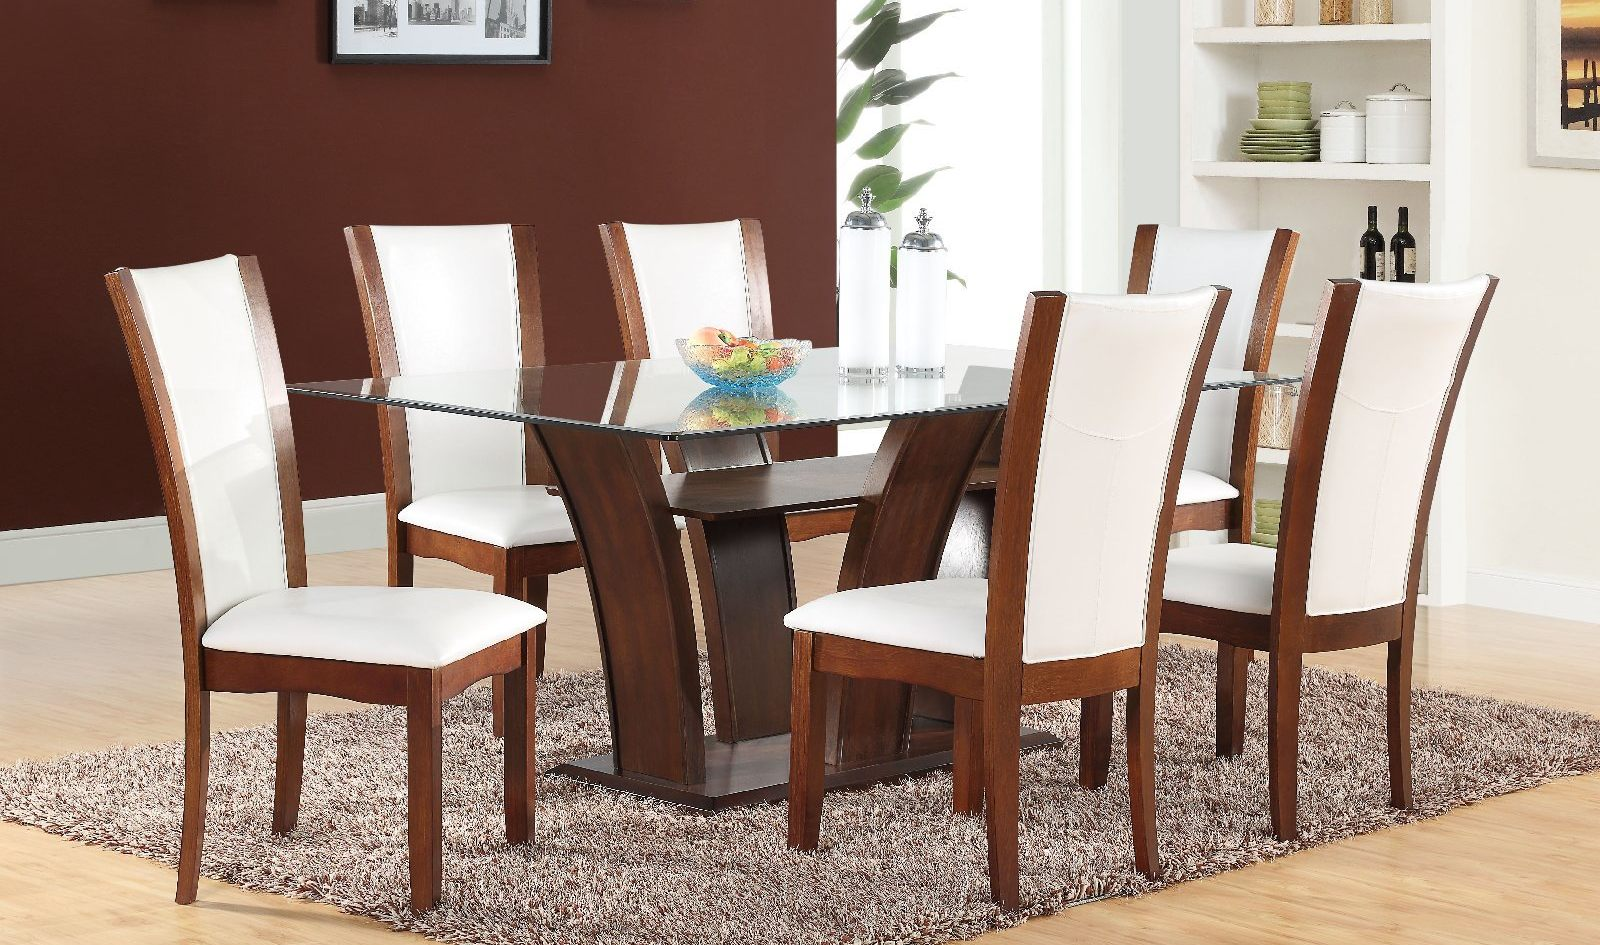 Latest designs at best prices of dining tables and chairs